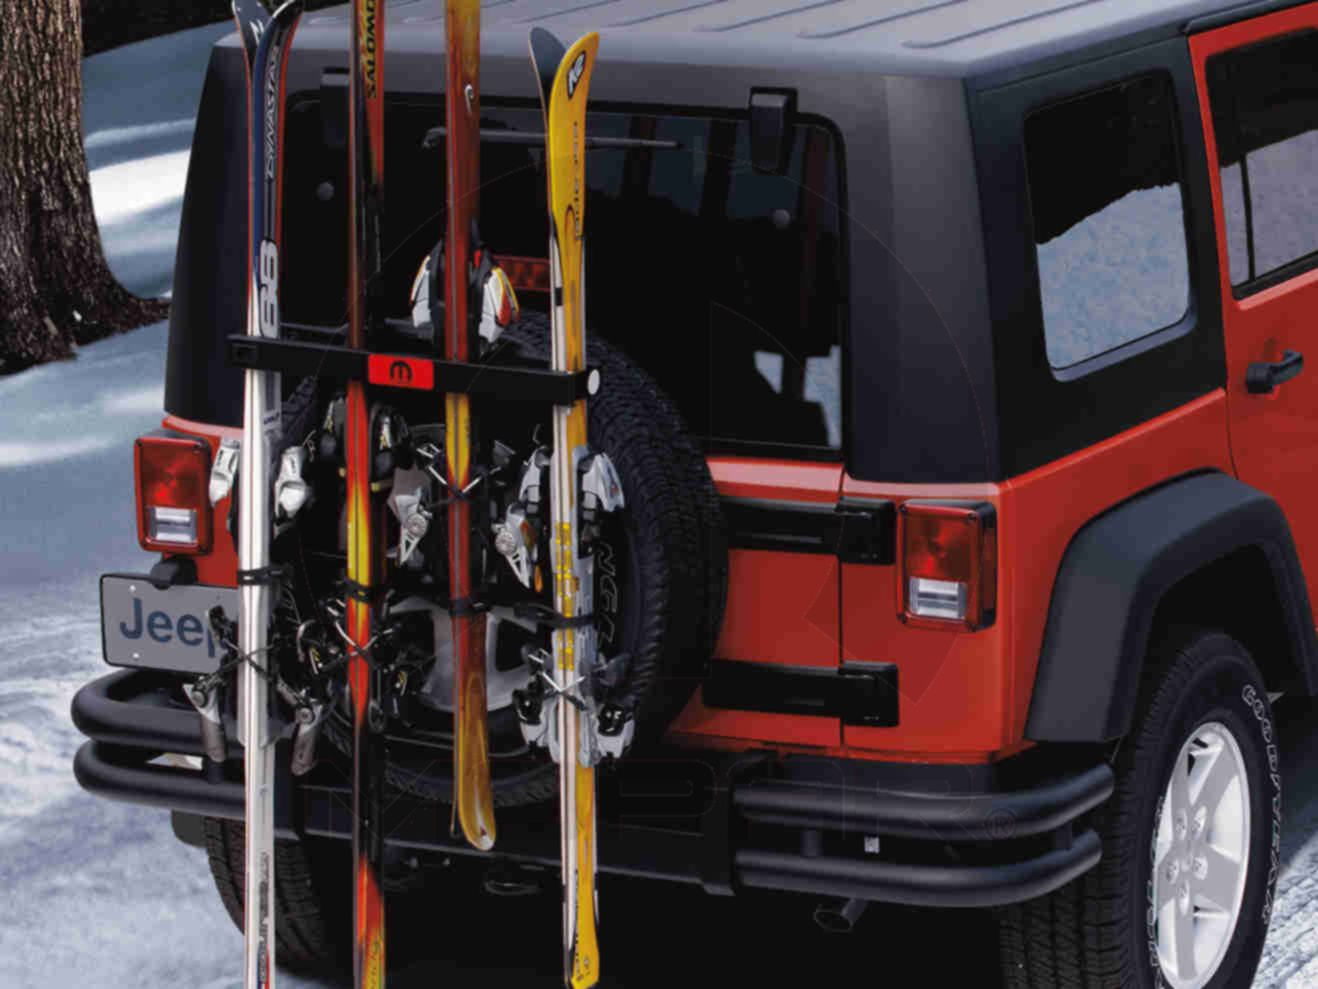 Ski Snowboard Carrier Spare Tire Mount Thsc9033 Spare Tire